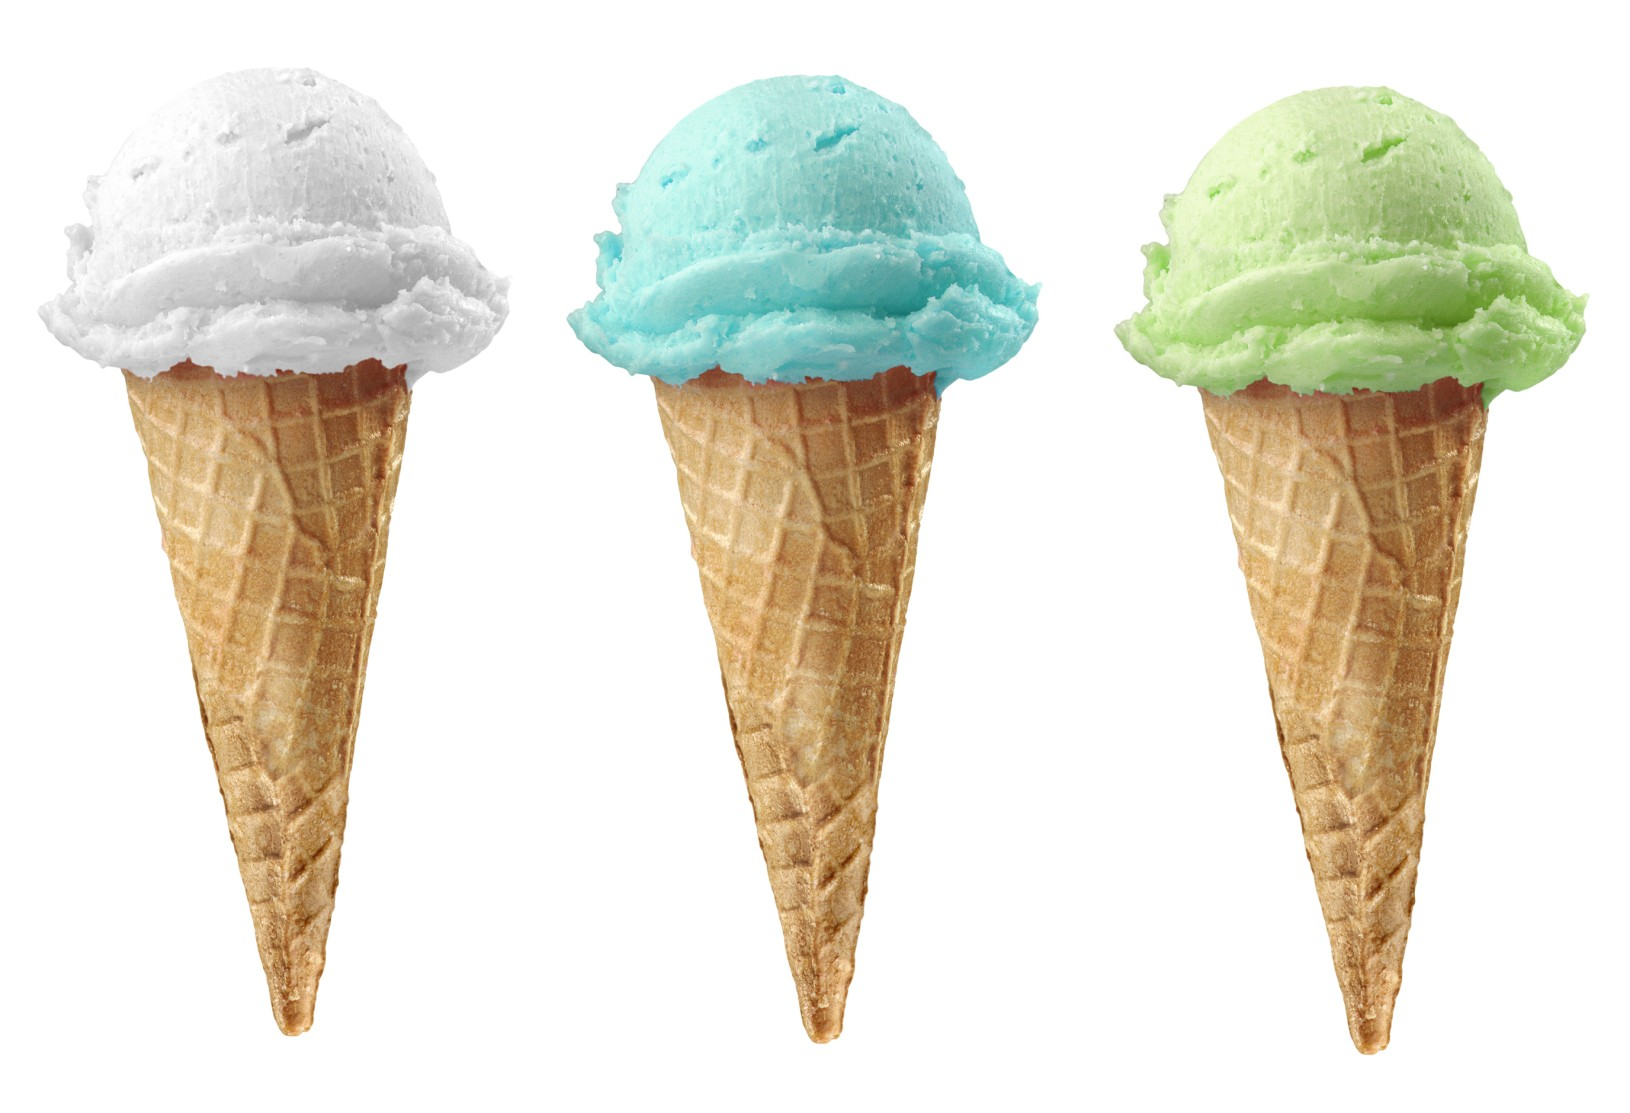 Six Ice Cream Cone Of 6 Different Flavors With Clipping Path